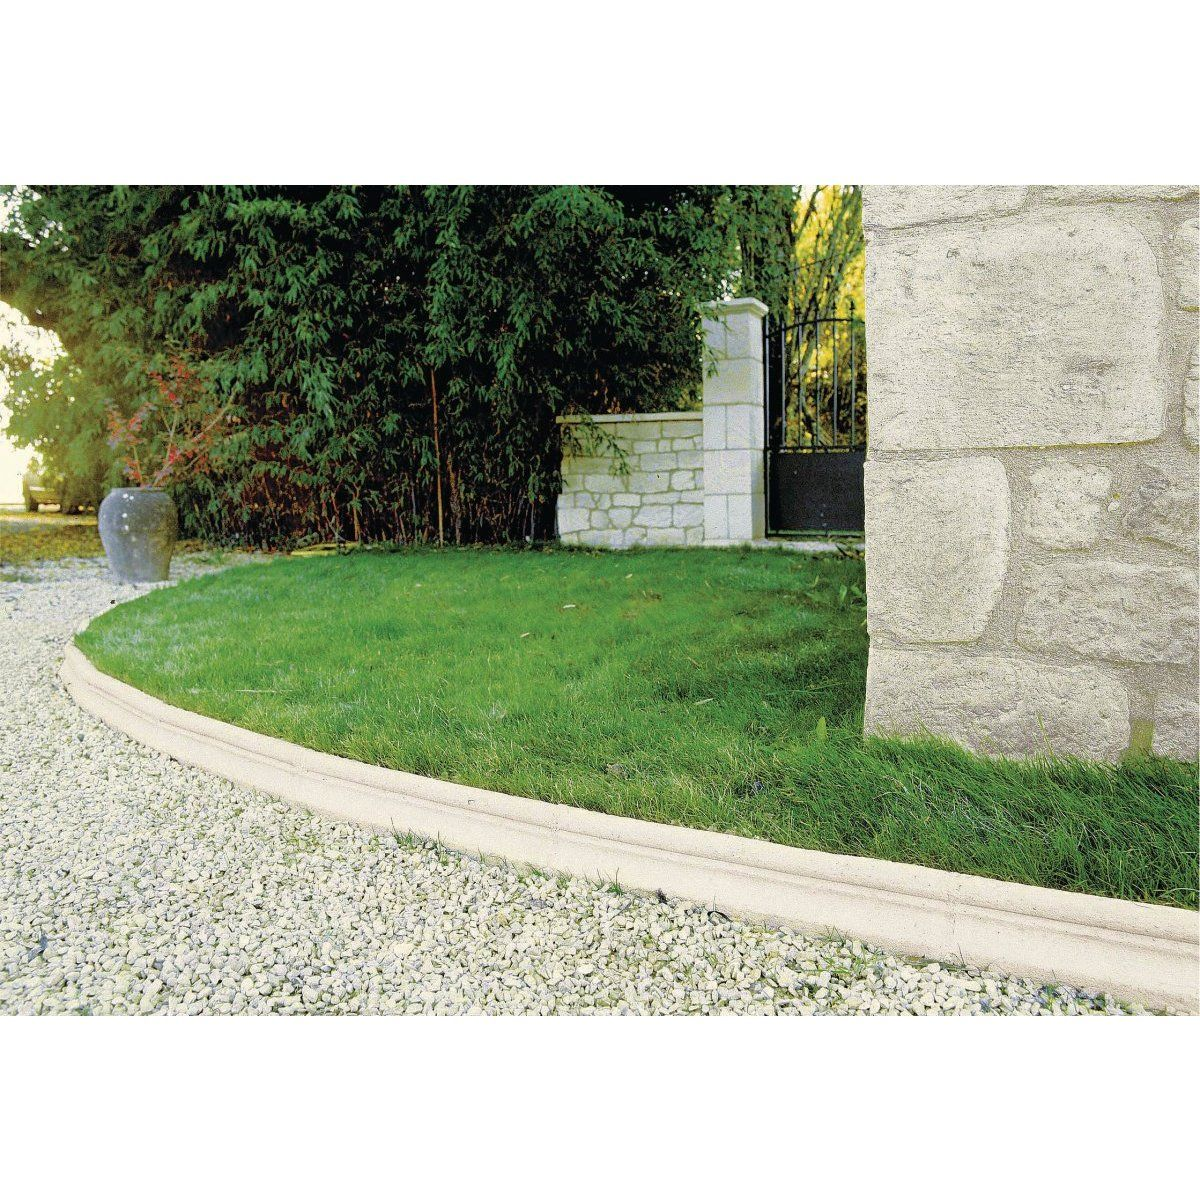 Bordure jardin pierre reconstitu e orsol ton pierre for Bordure de fenetre